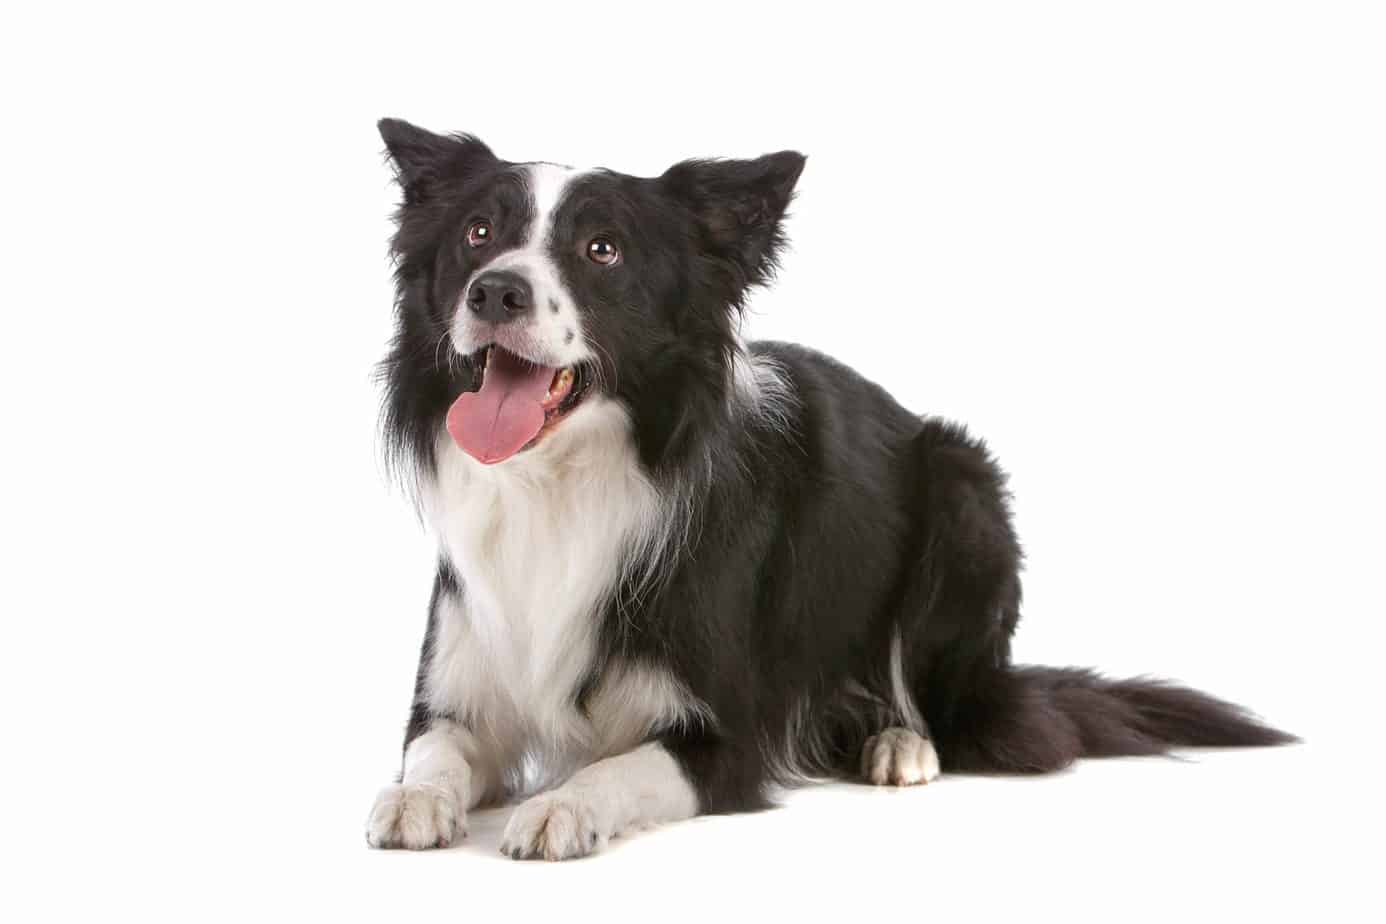 Happy border collie on white background. A study done in Australia proved that CBD products could control atopic dermatitis symptoms in dogs.